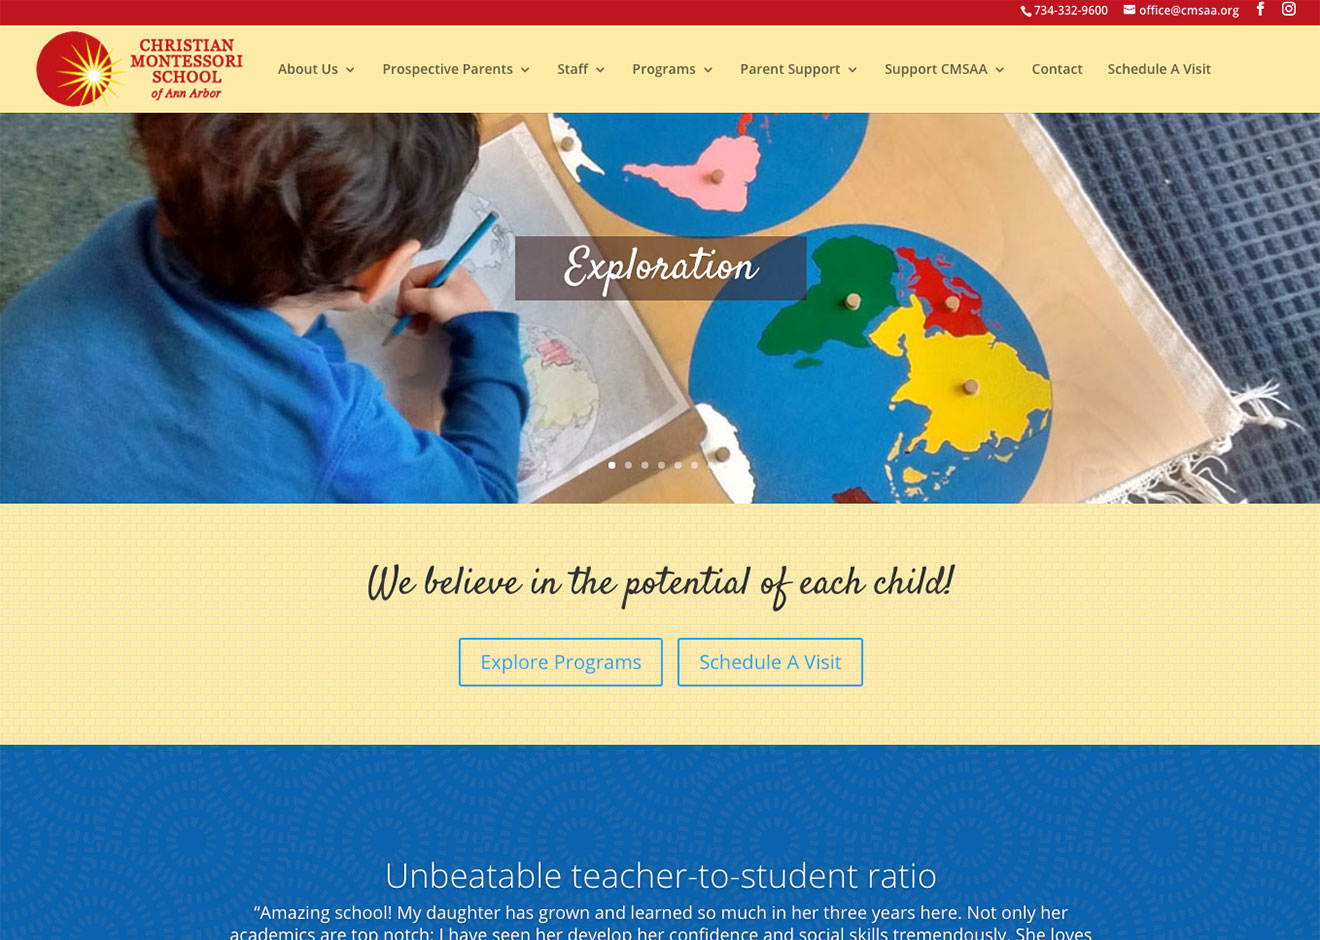 Screenshot of Christian Montessori School of Ann Arbor home page